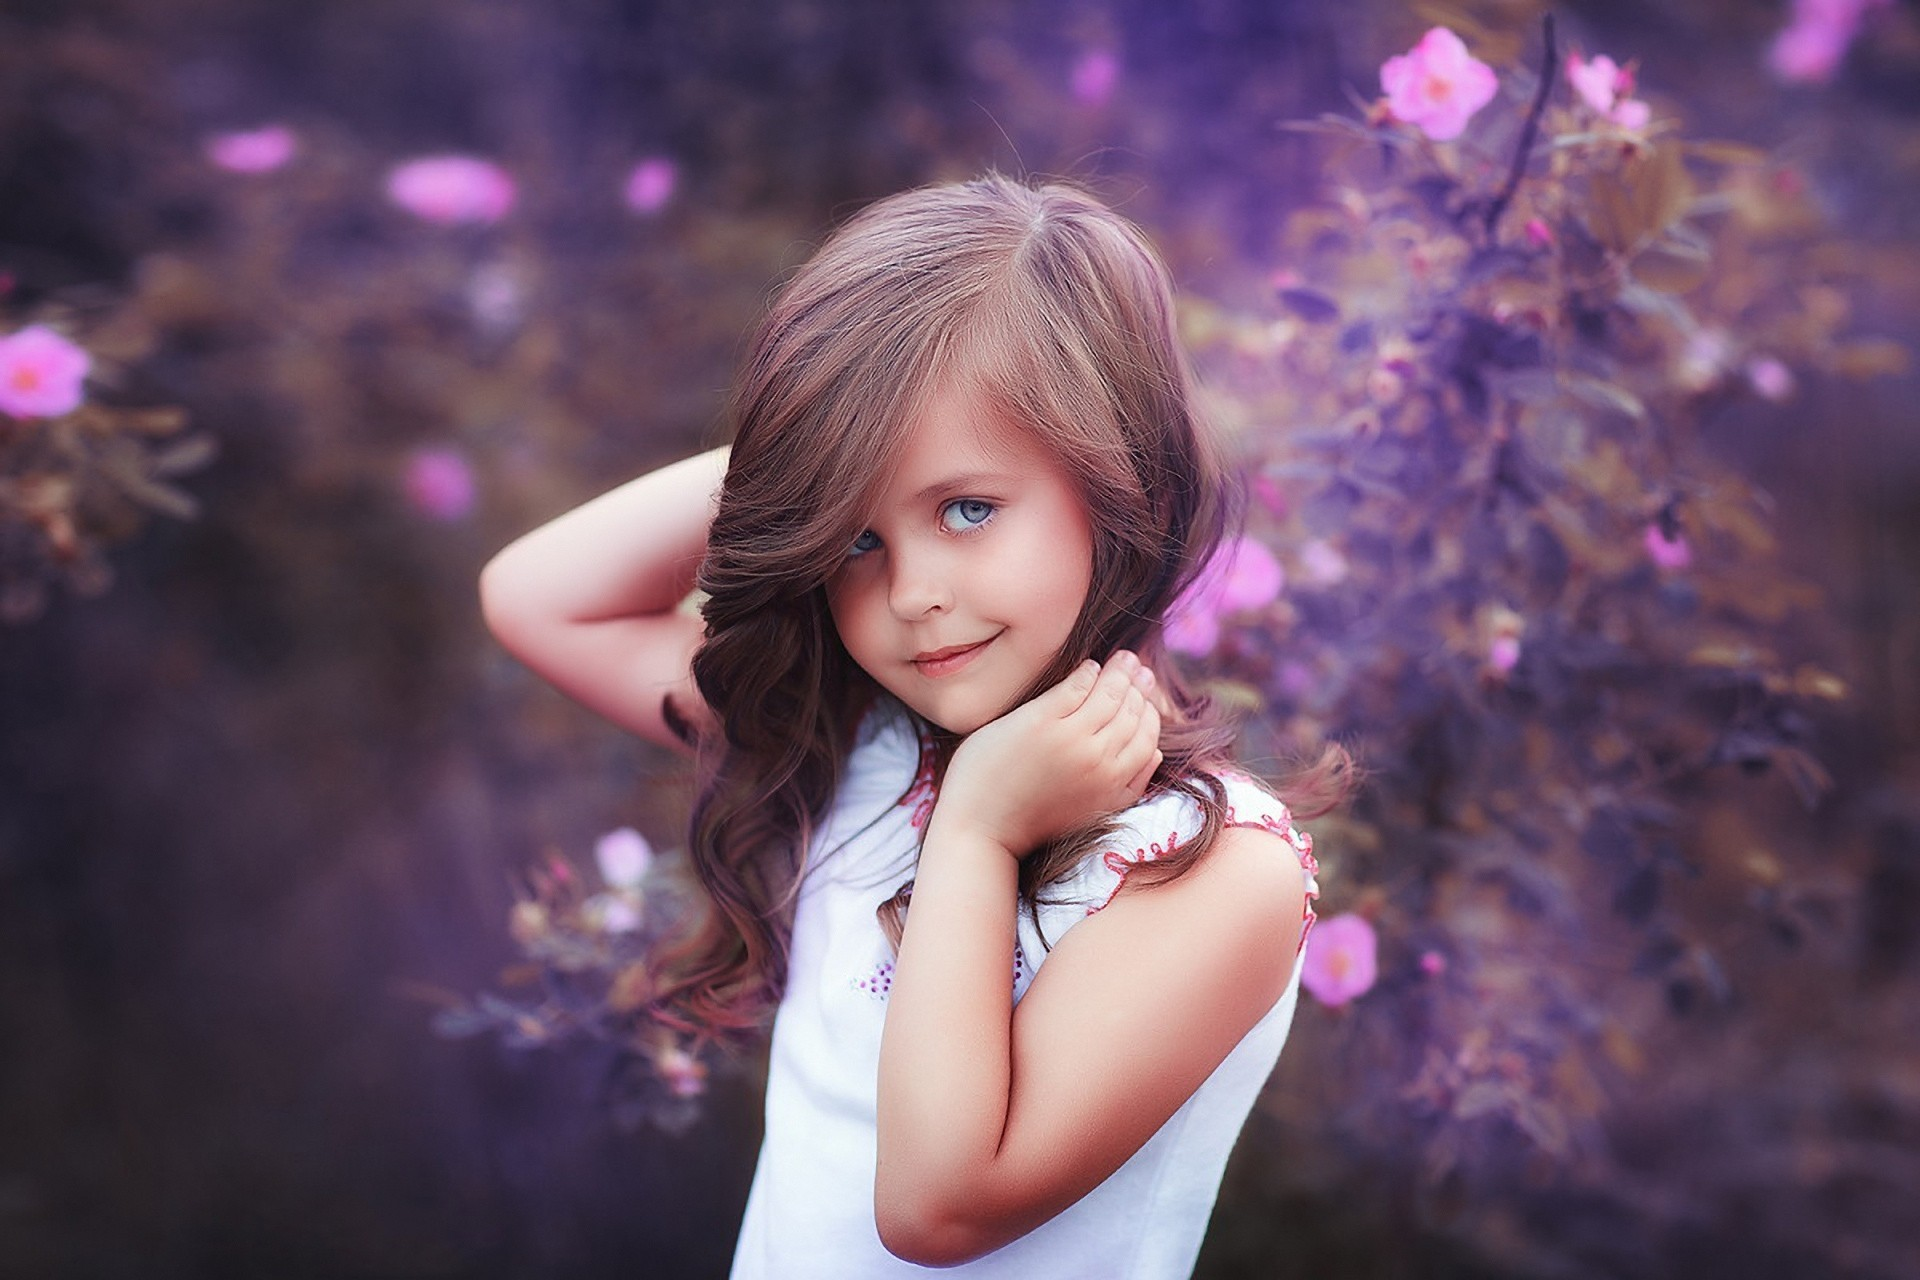 girl pose children flower views beauty child